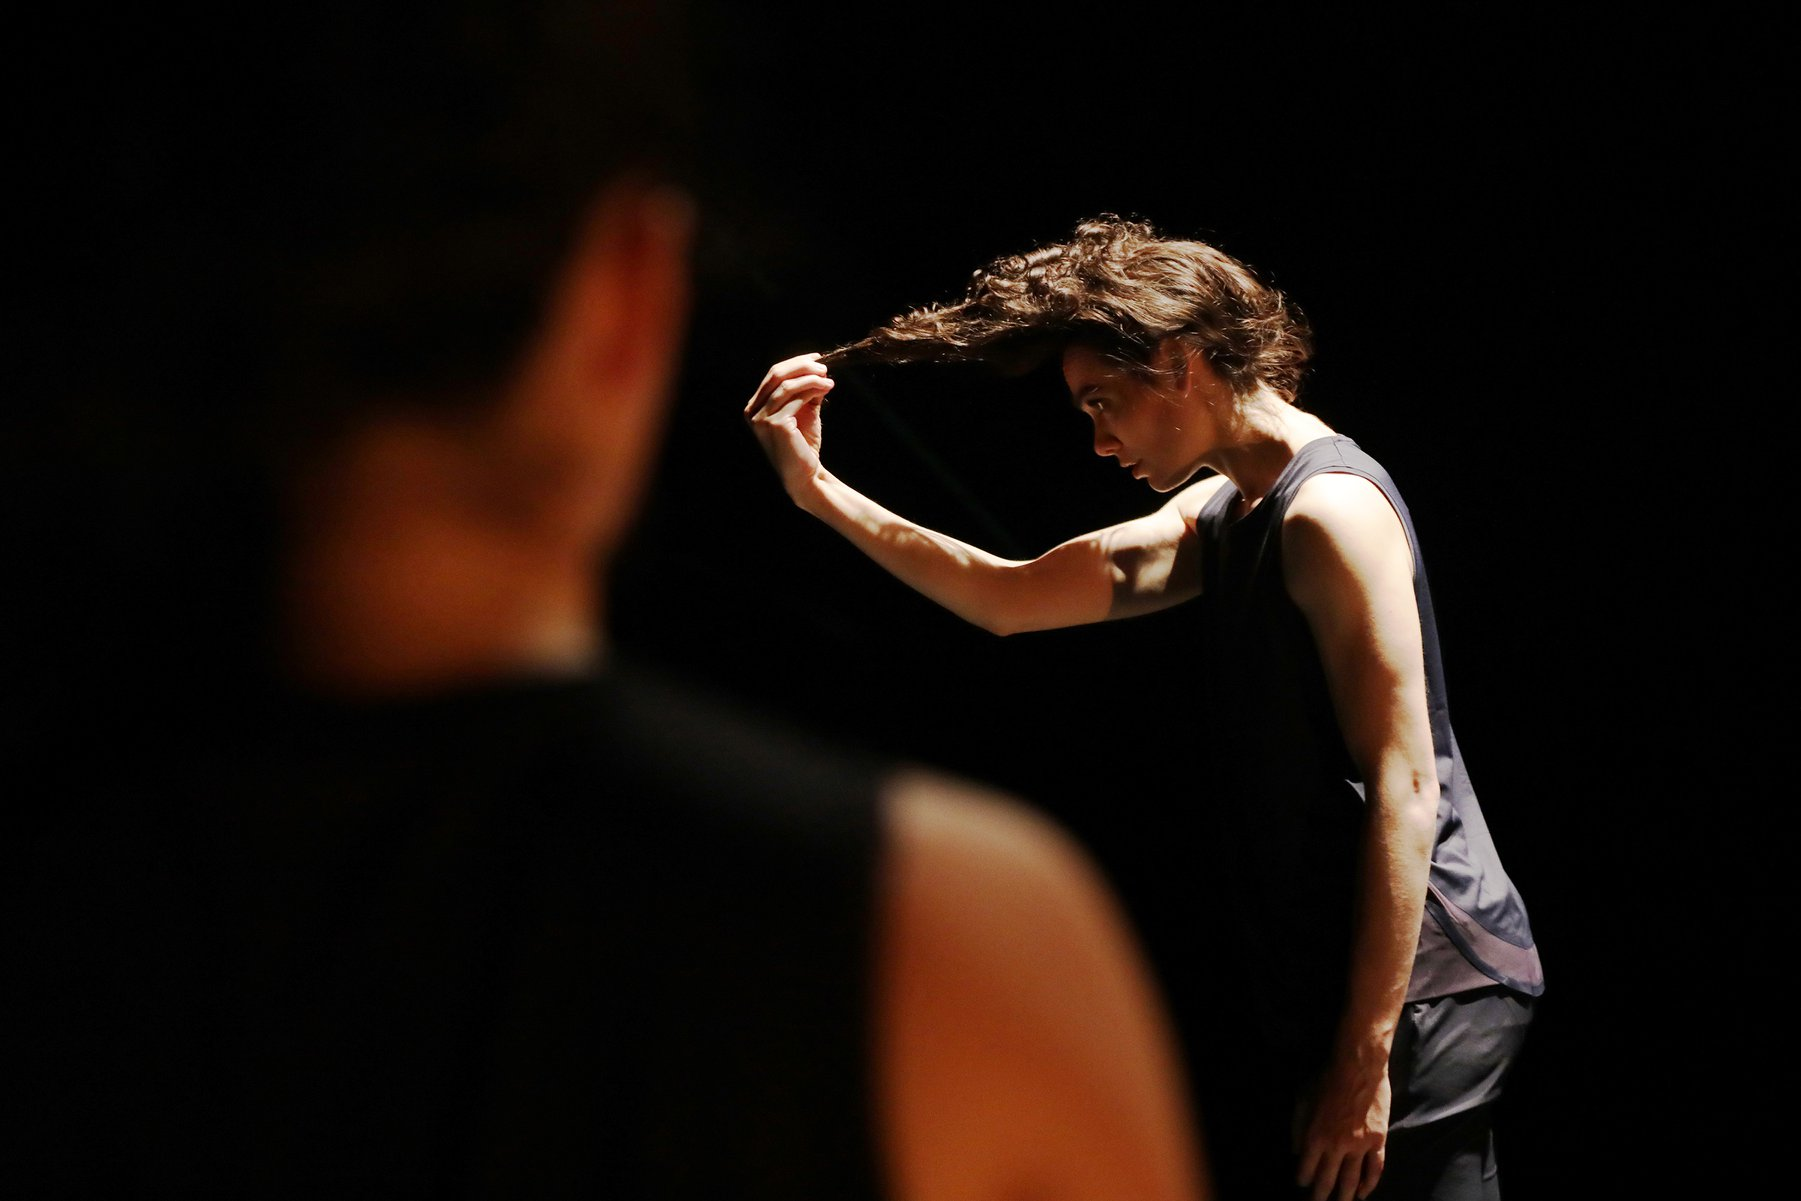 a woman grabs her pony tail strongly as another woman watches on a dark stage